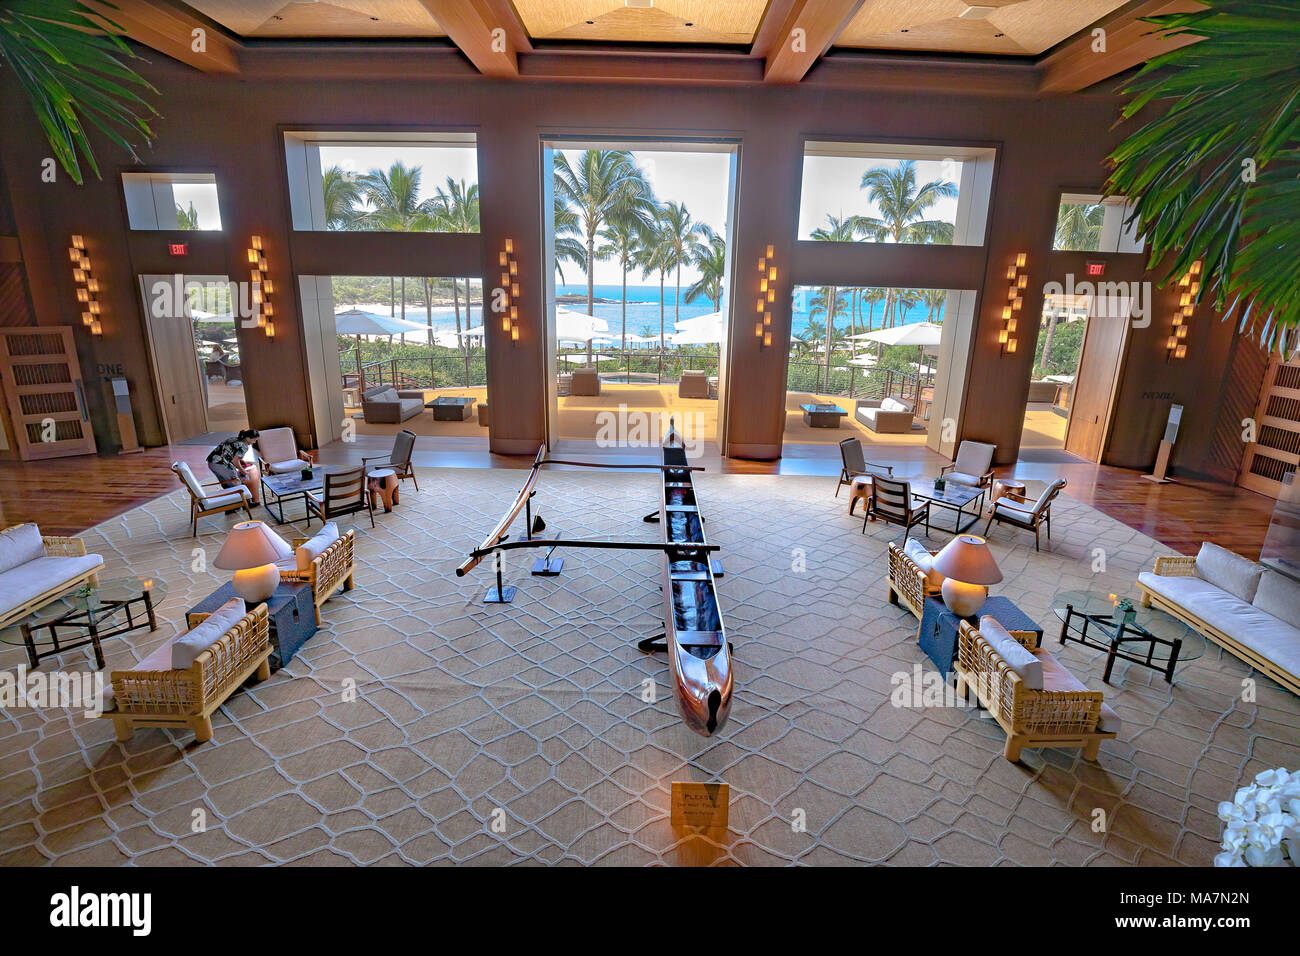 A 2017 view from the upper lobby of the newly renovated Four Seasons Resort Lanai at Manele Bay, Lanai, Hawaii. - Stock Image